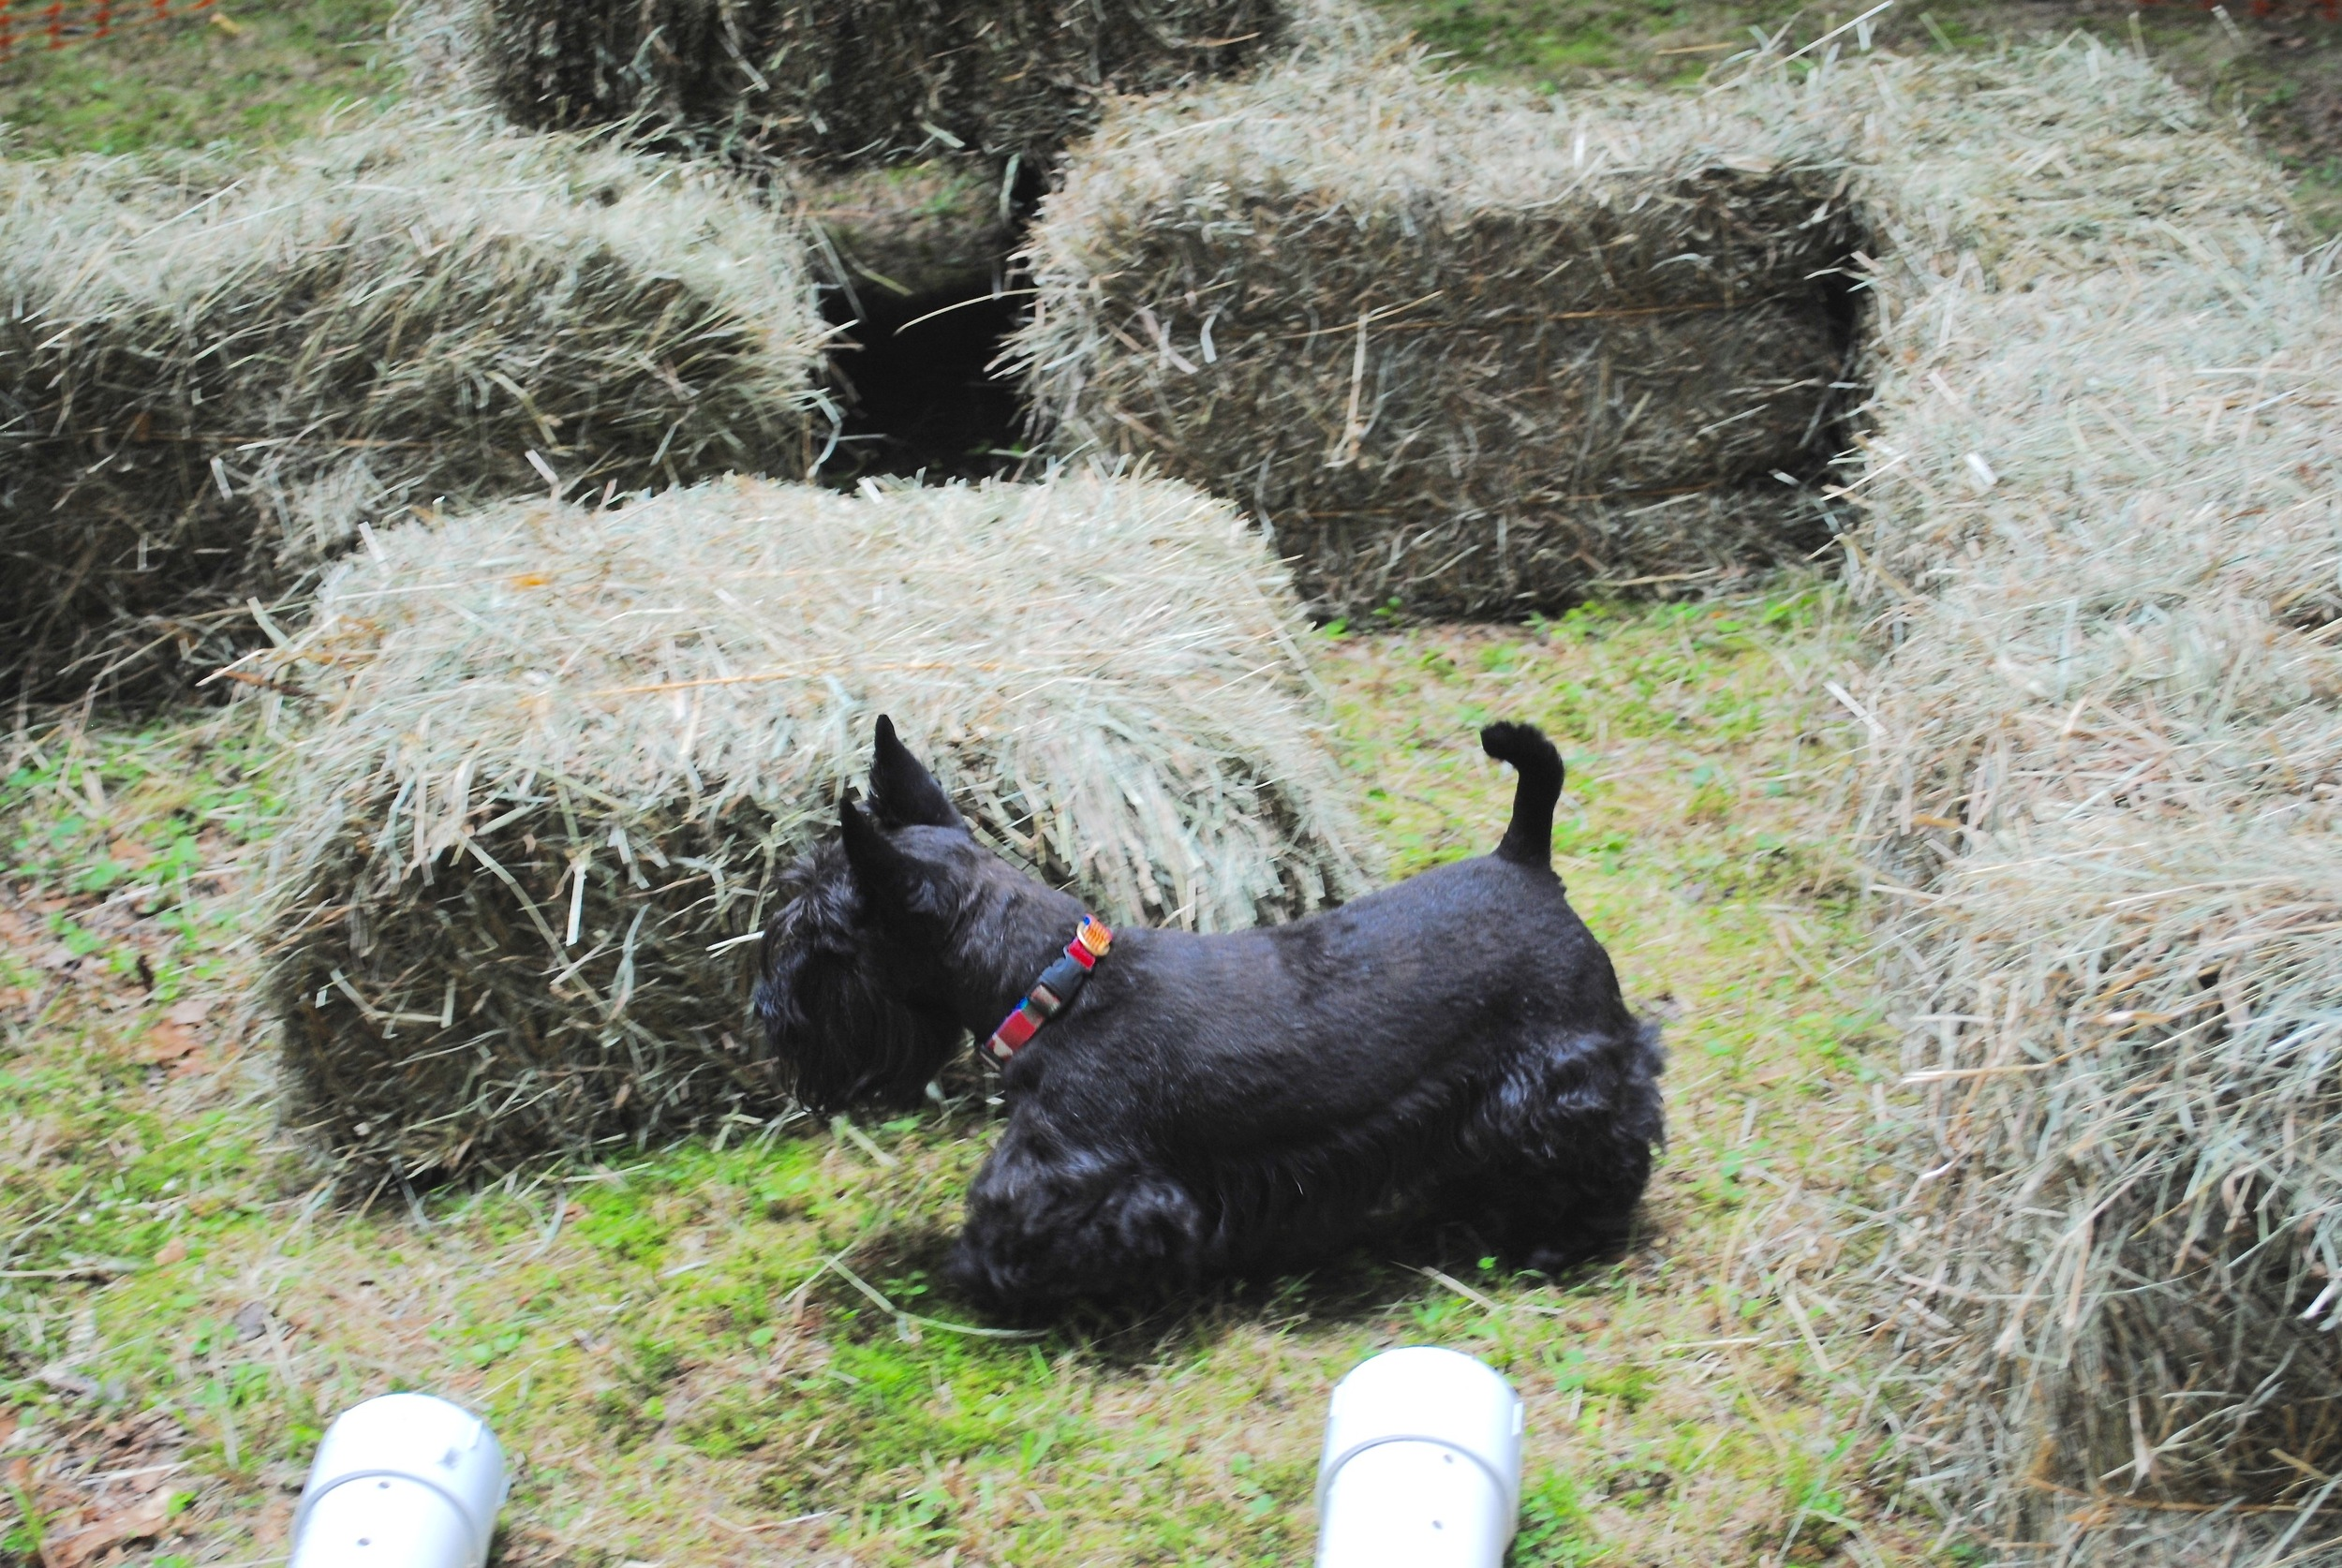 Barn Hunt  at the Doggie Fun Day in July